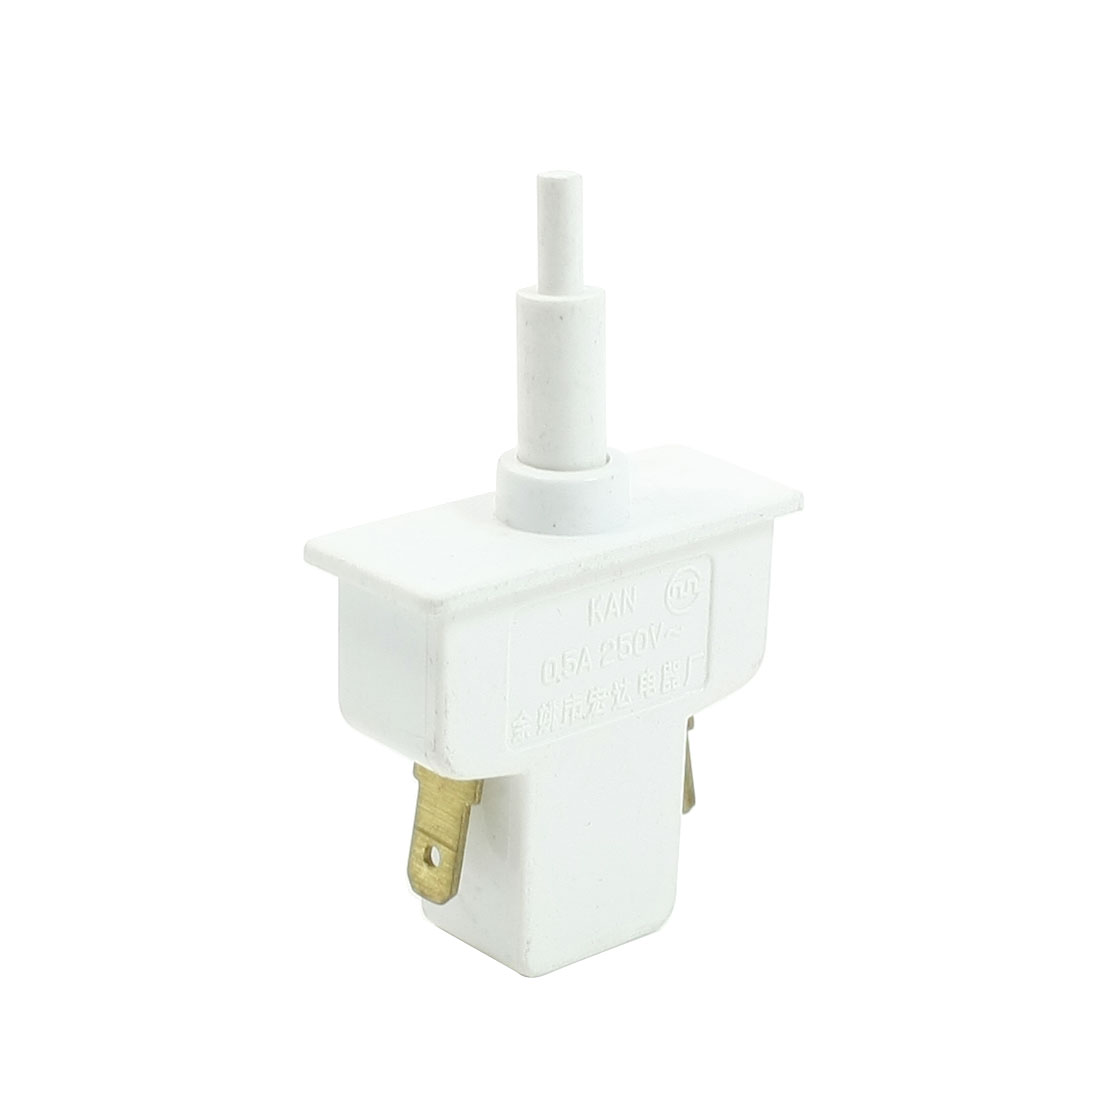 Refrigerator Single Pole Single Throw Momentary Door Light Switch 250VAC 0.5A